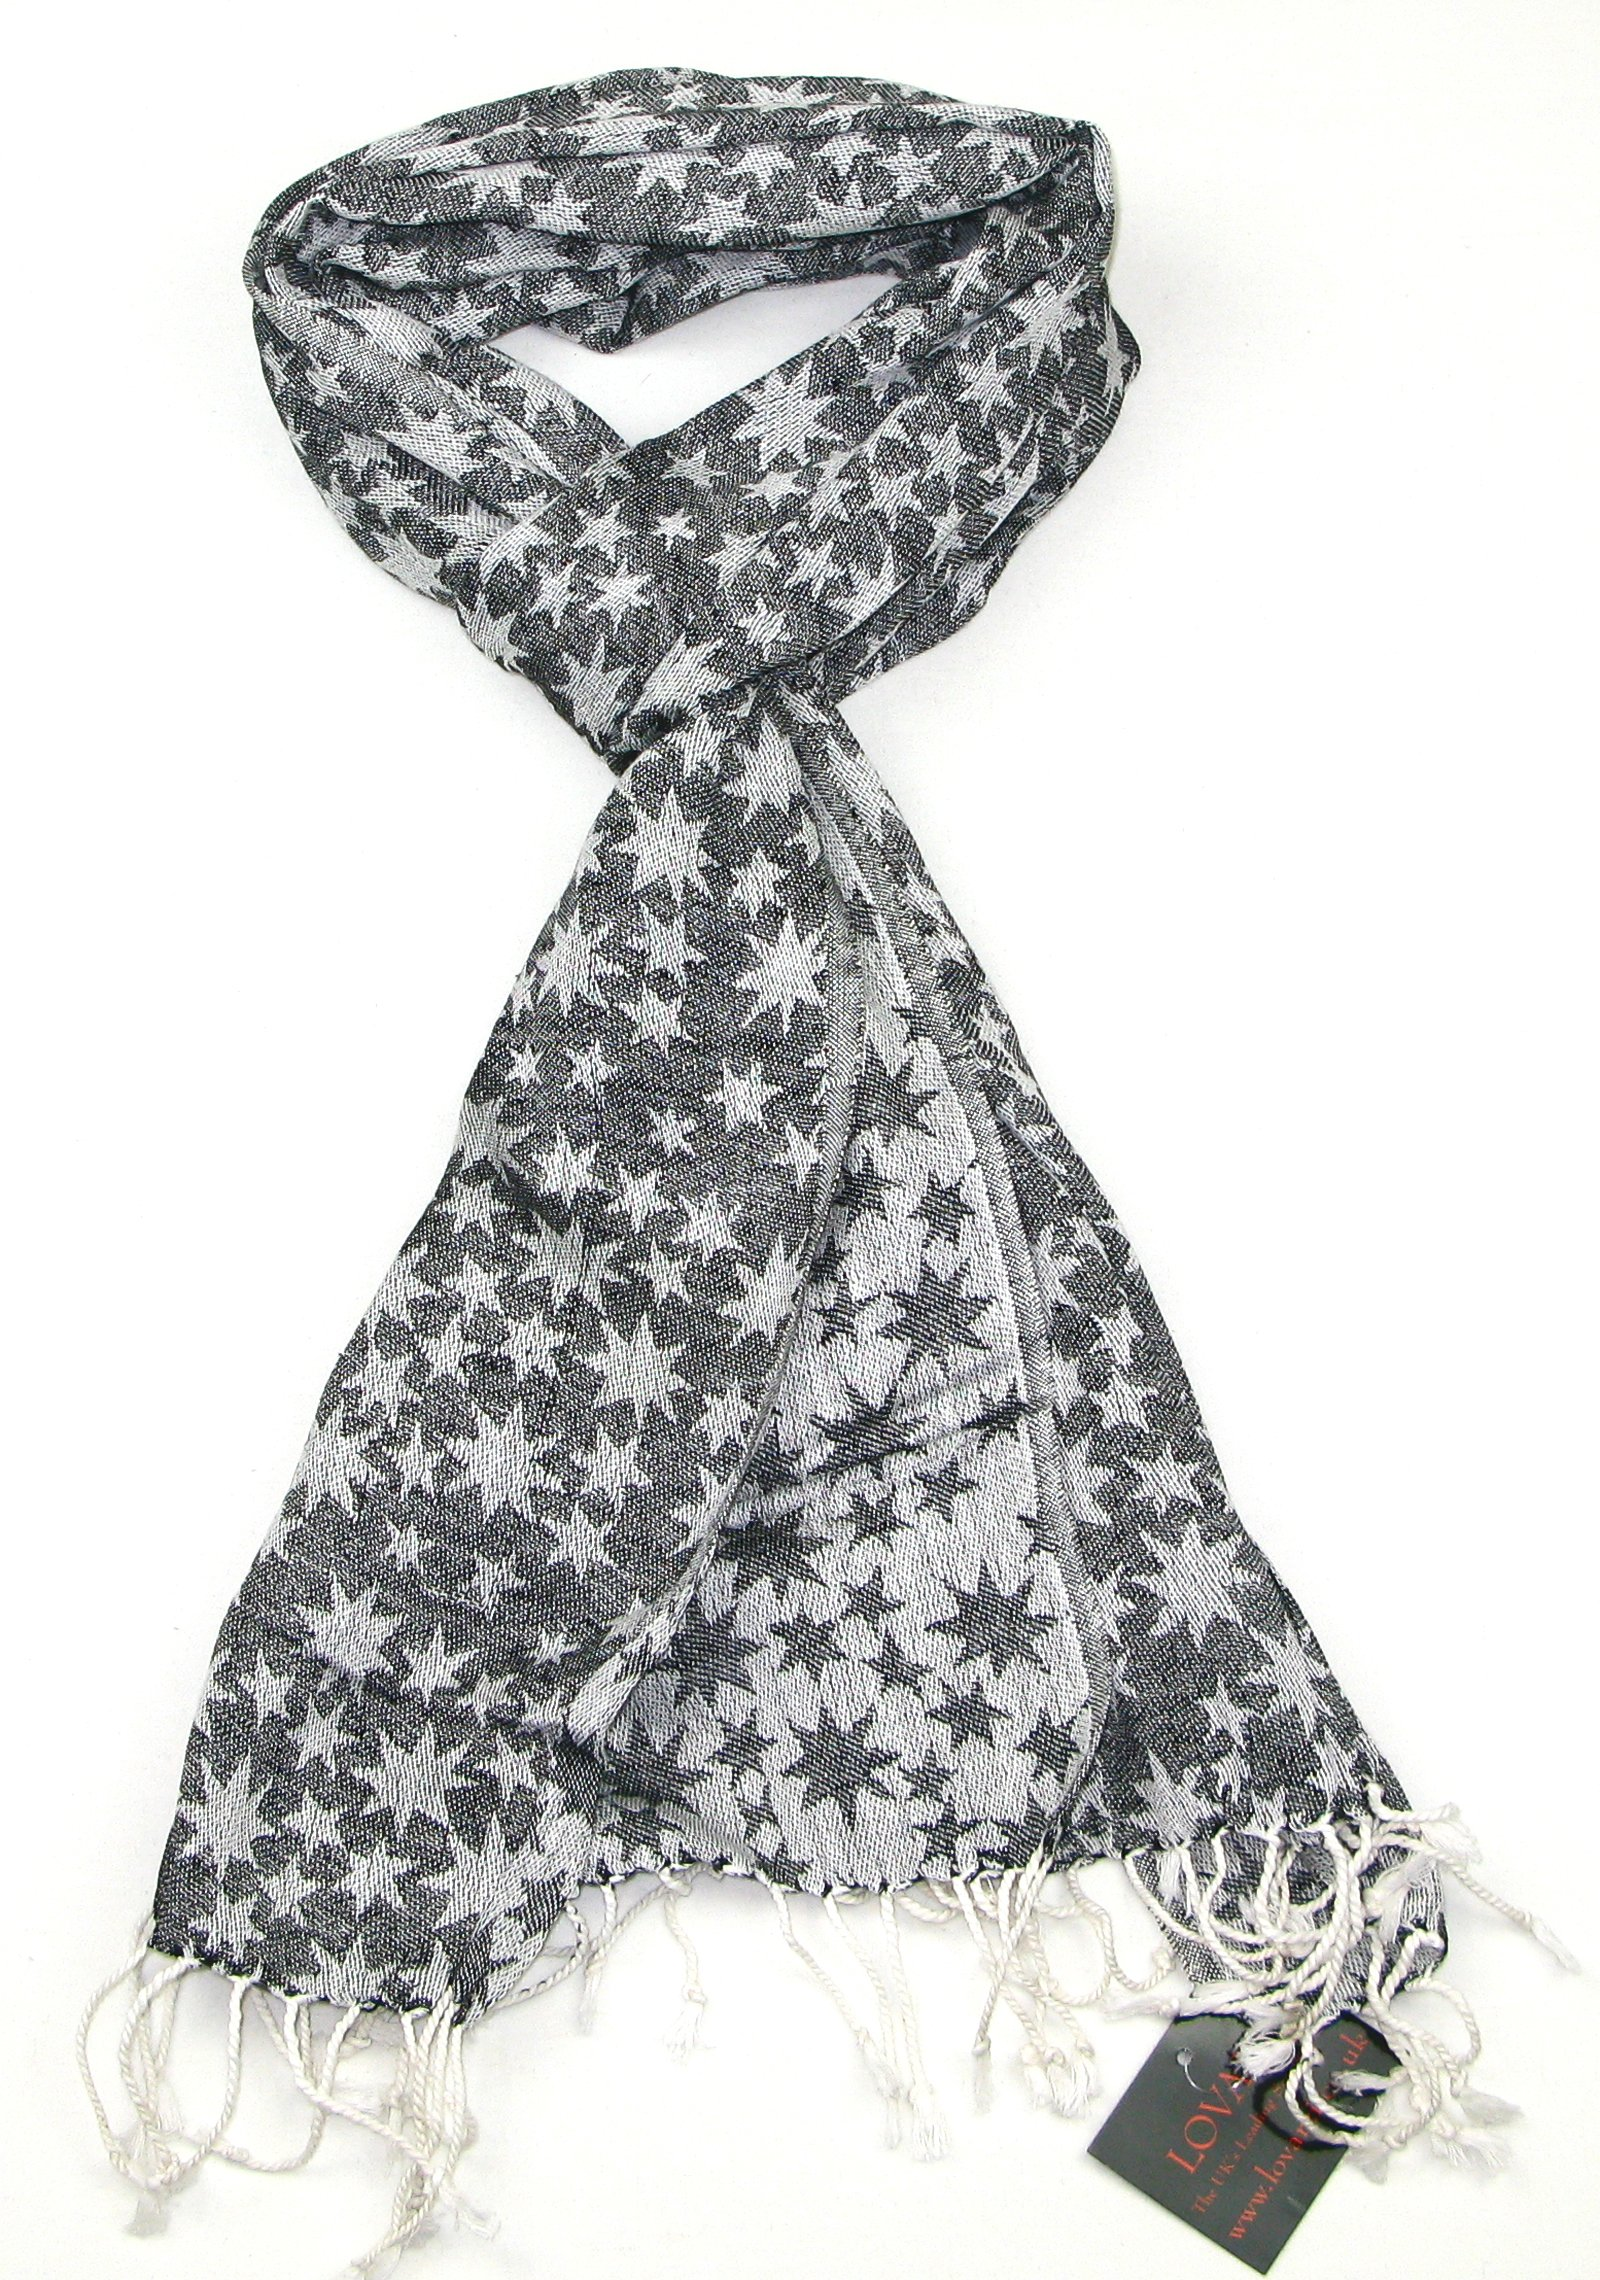 Lovarzi Black and White Star Scarf - Cotton scarves for winter and summer